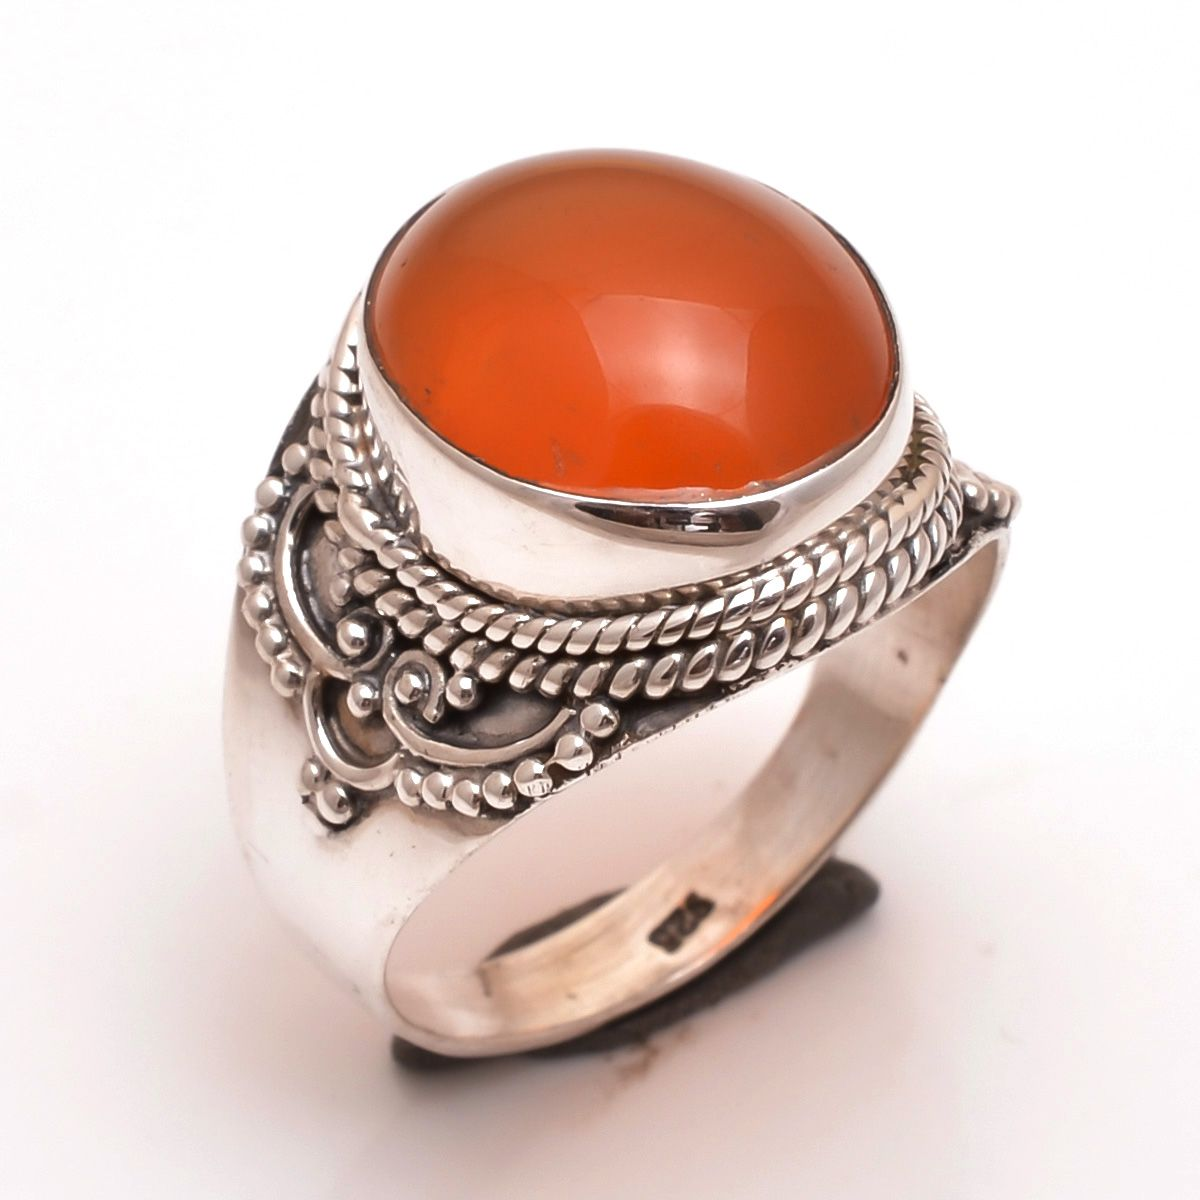 Carnelian Gemstone 925 Sterling Silver Ring Size 9